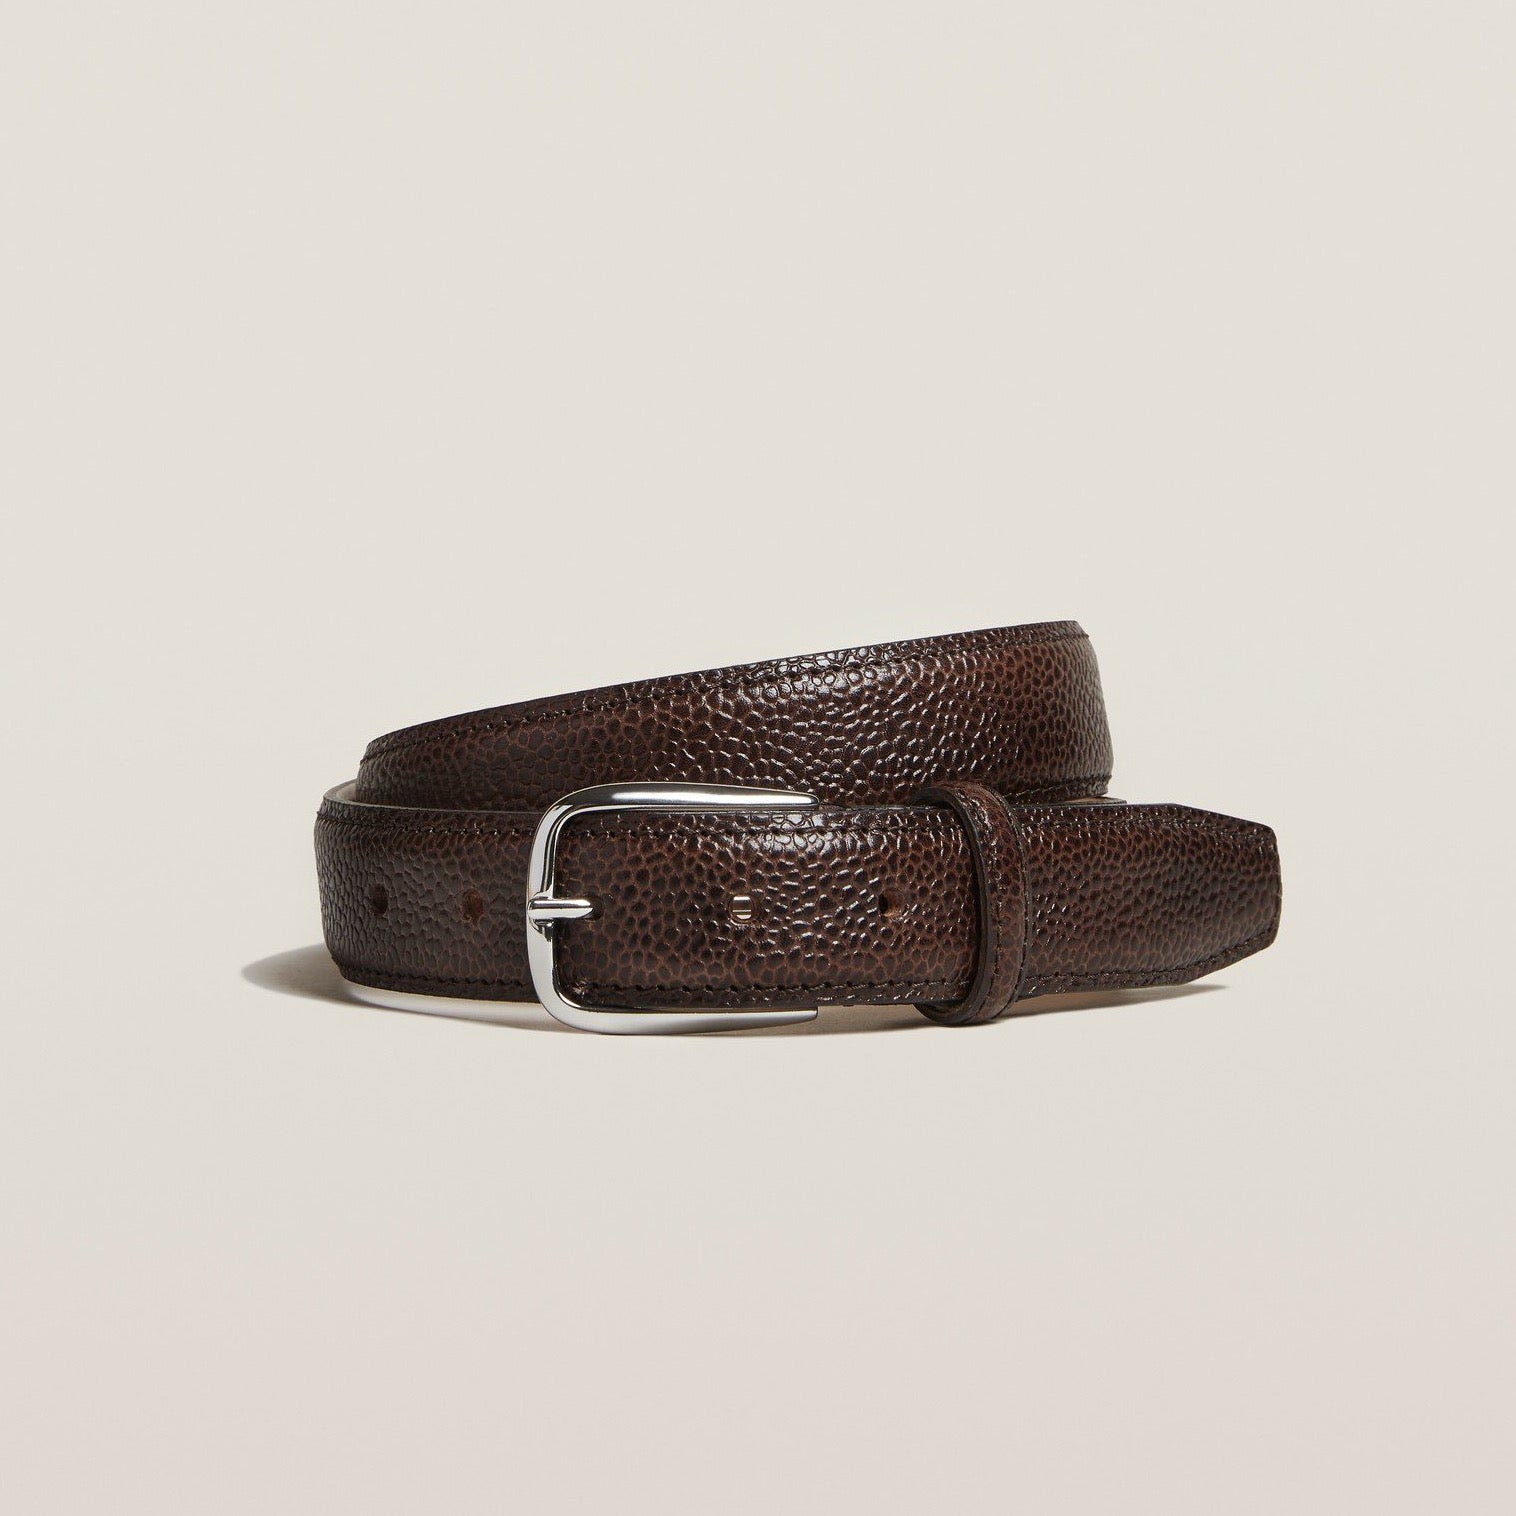 Belt - Dark Brown Country Calf